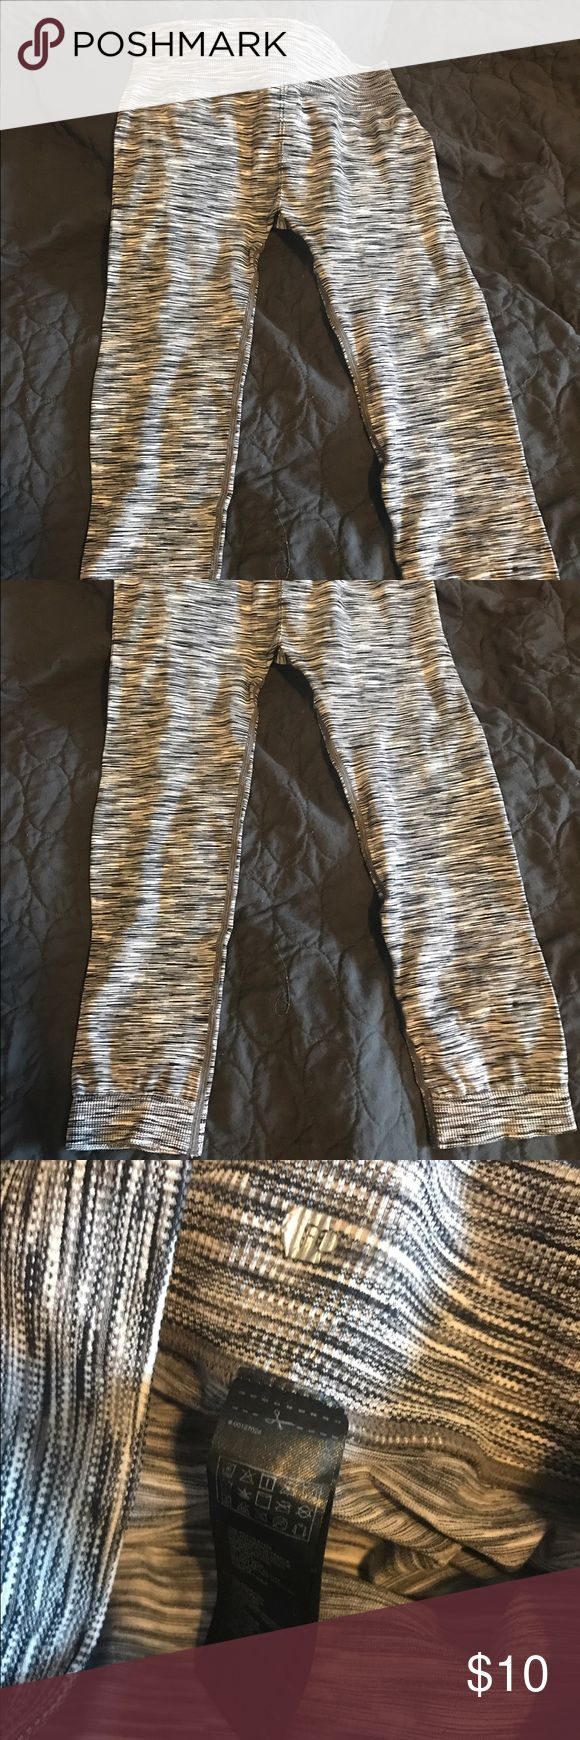 Forever 21 workout capris Grey, white and black workout Capri worn twice. Forever 21 Pants Capris